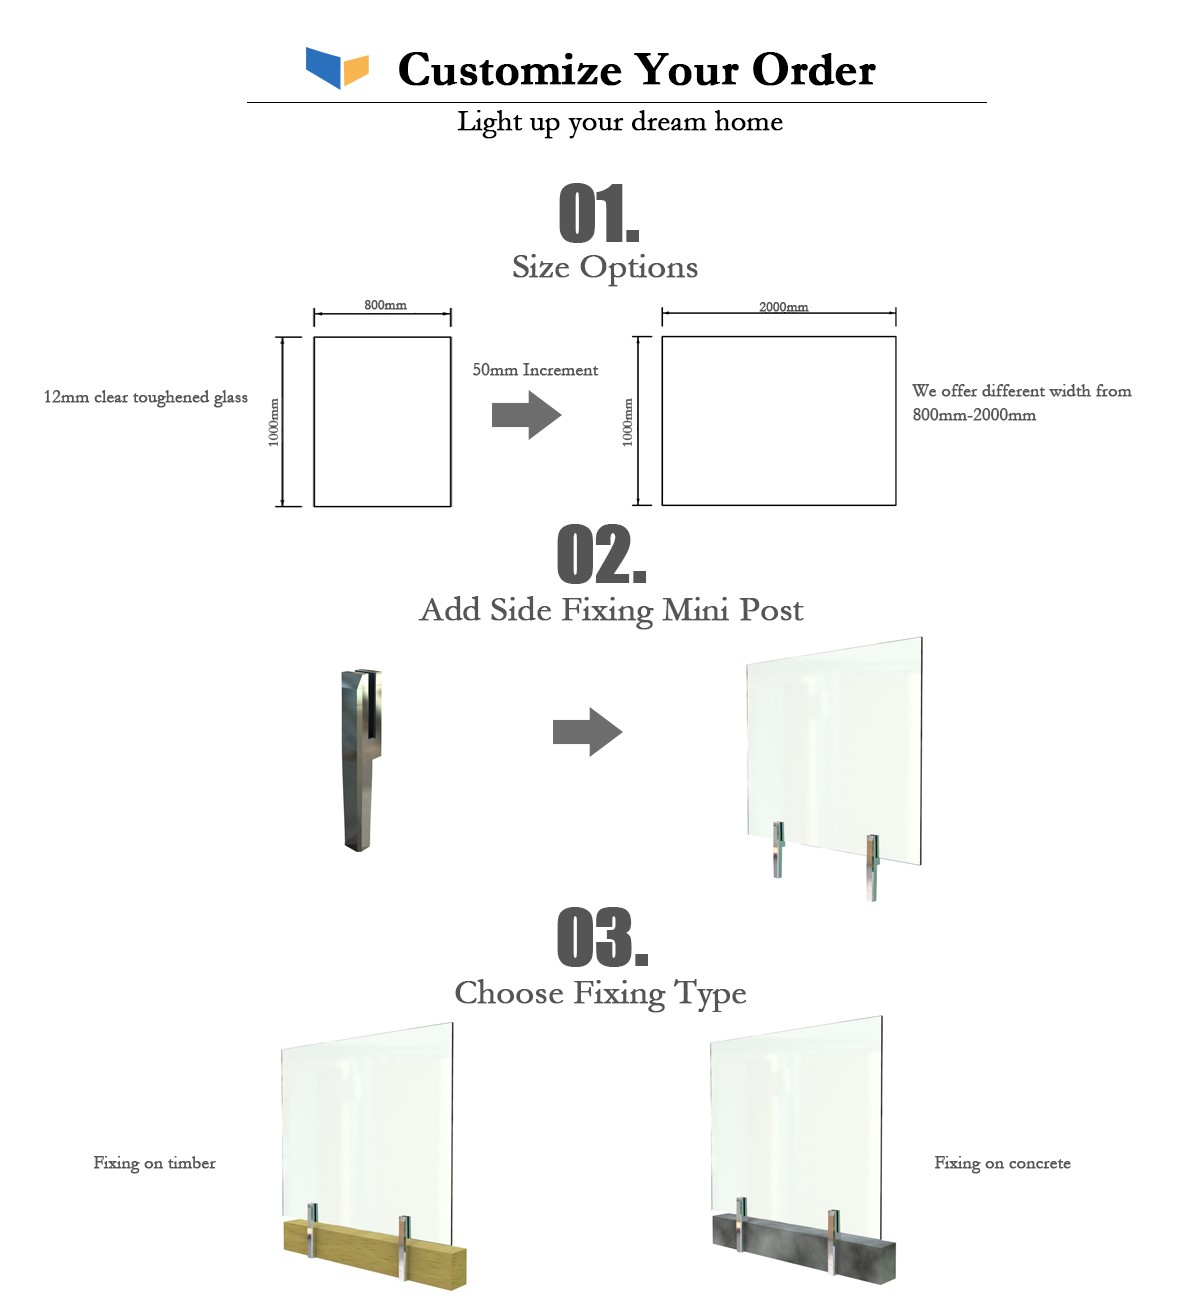 sfmpustomize-your-order-revised.jpg